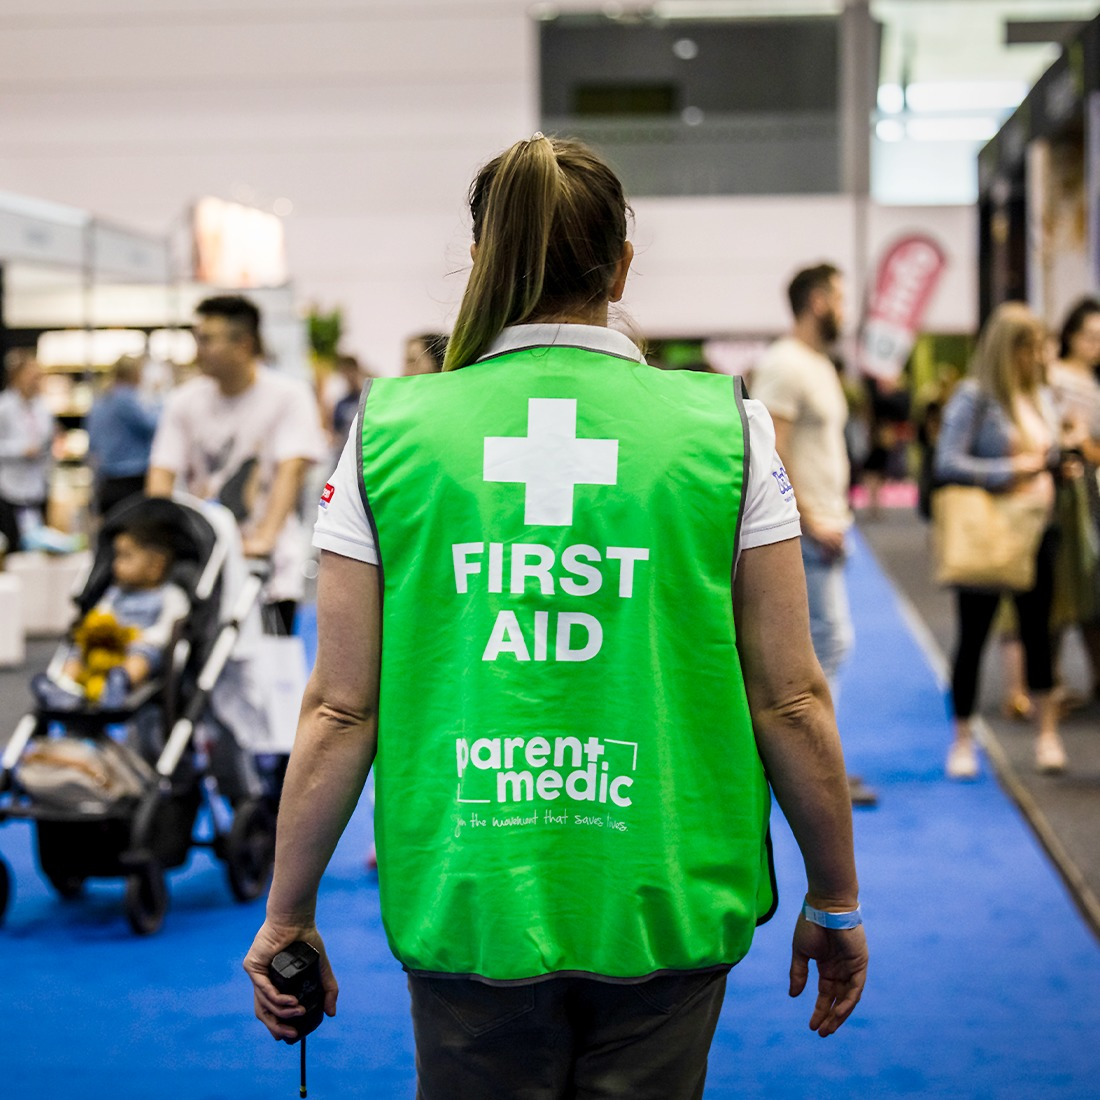 Woman in a green first aid jacket